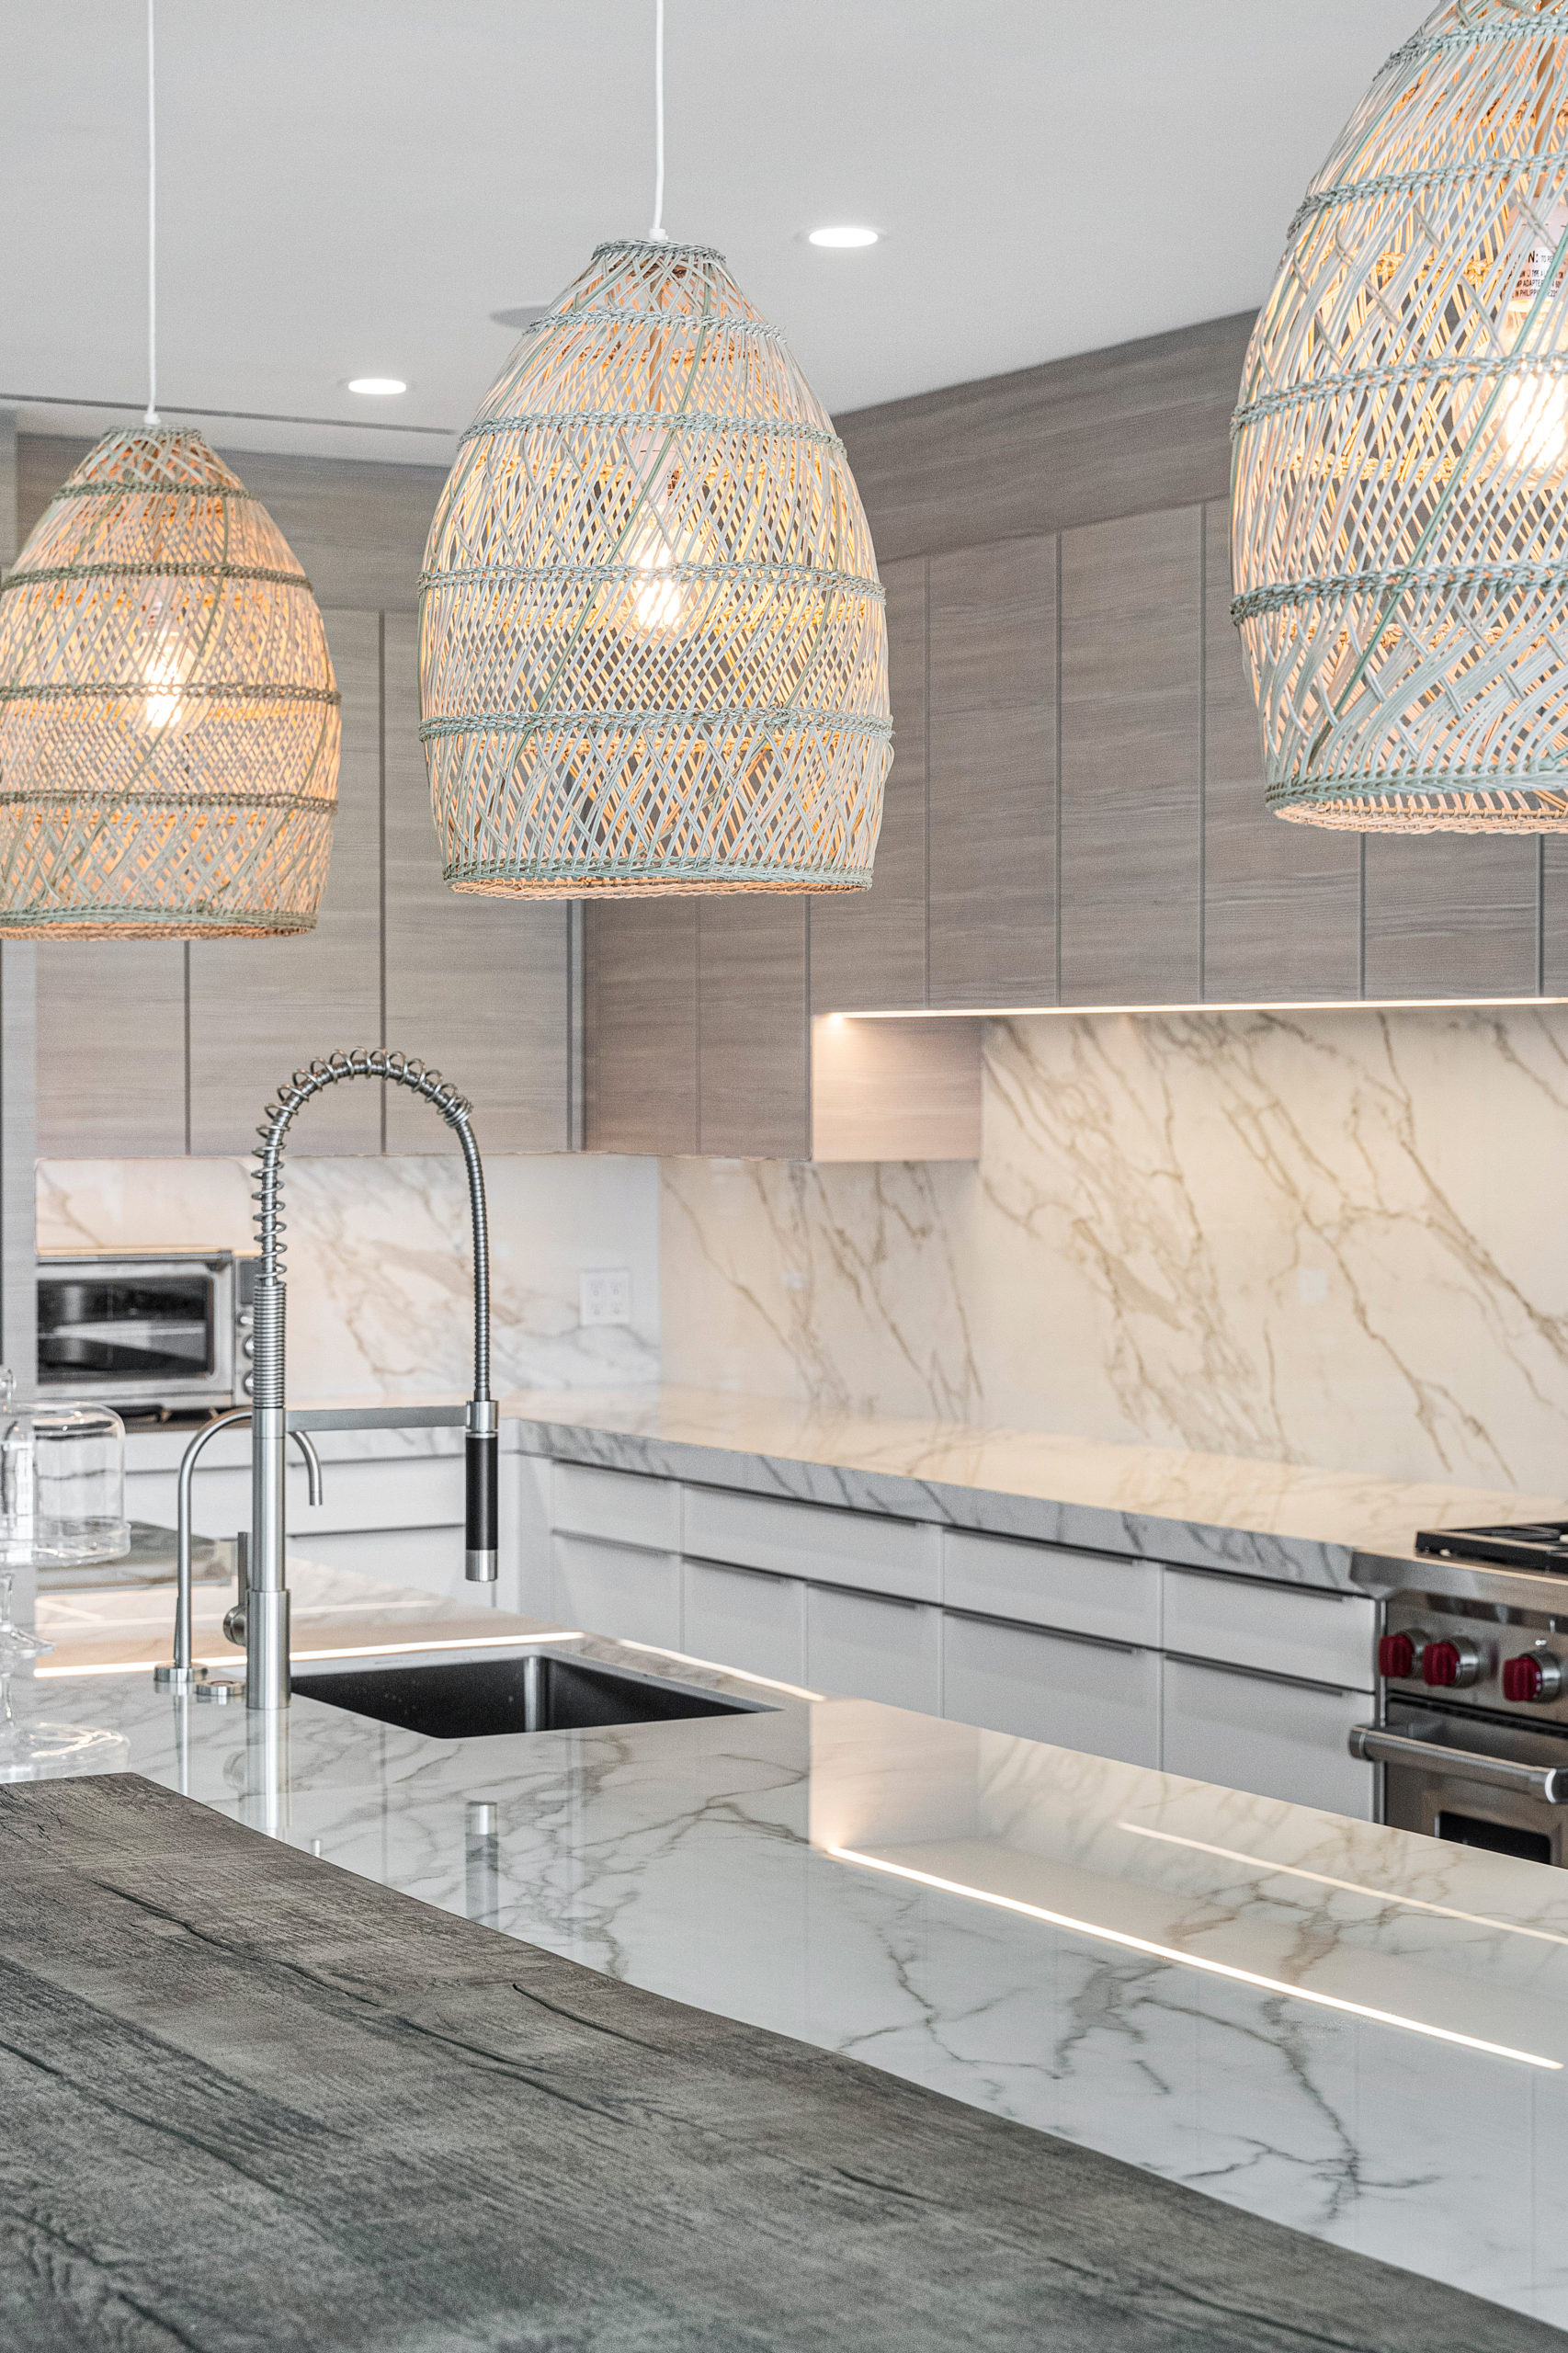 SAVE MONEY ON YOUR CUSTOM HOME: WHEN TO SPLURGE AND WHEN TO SKIMP